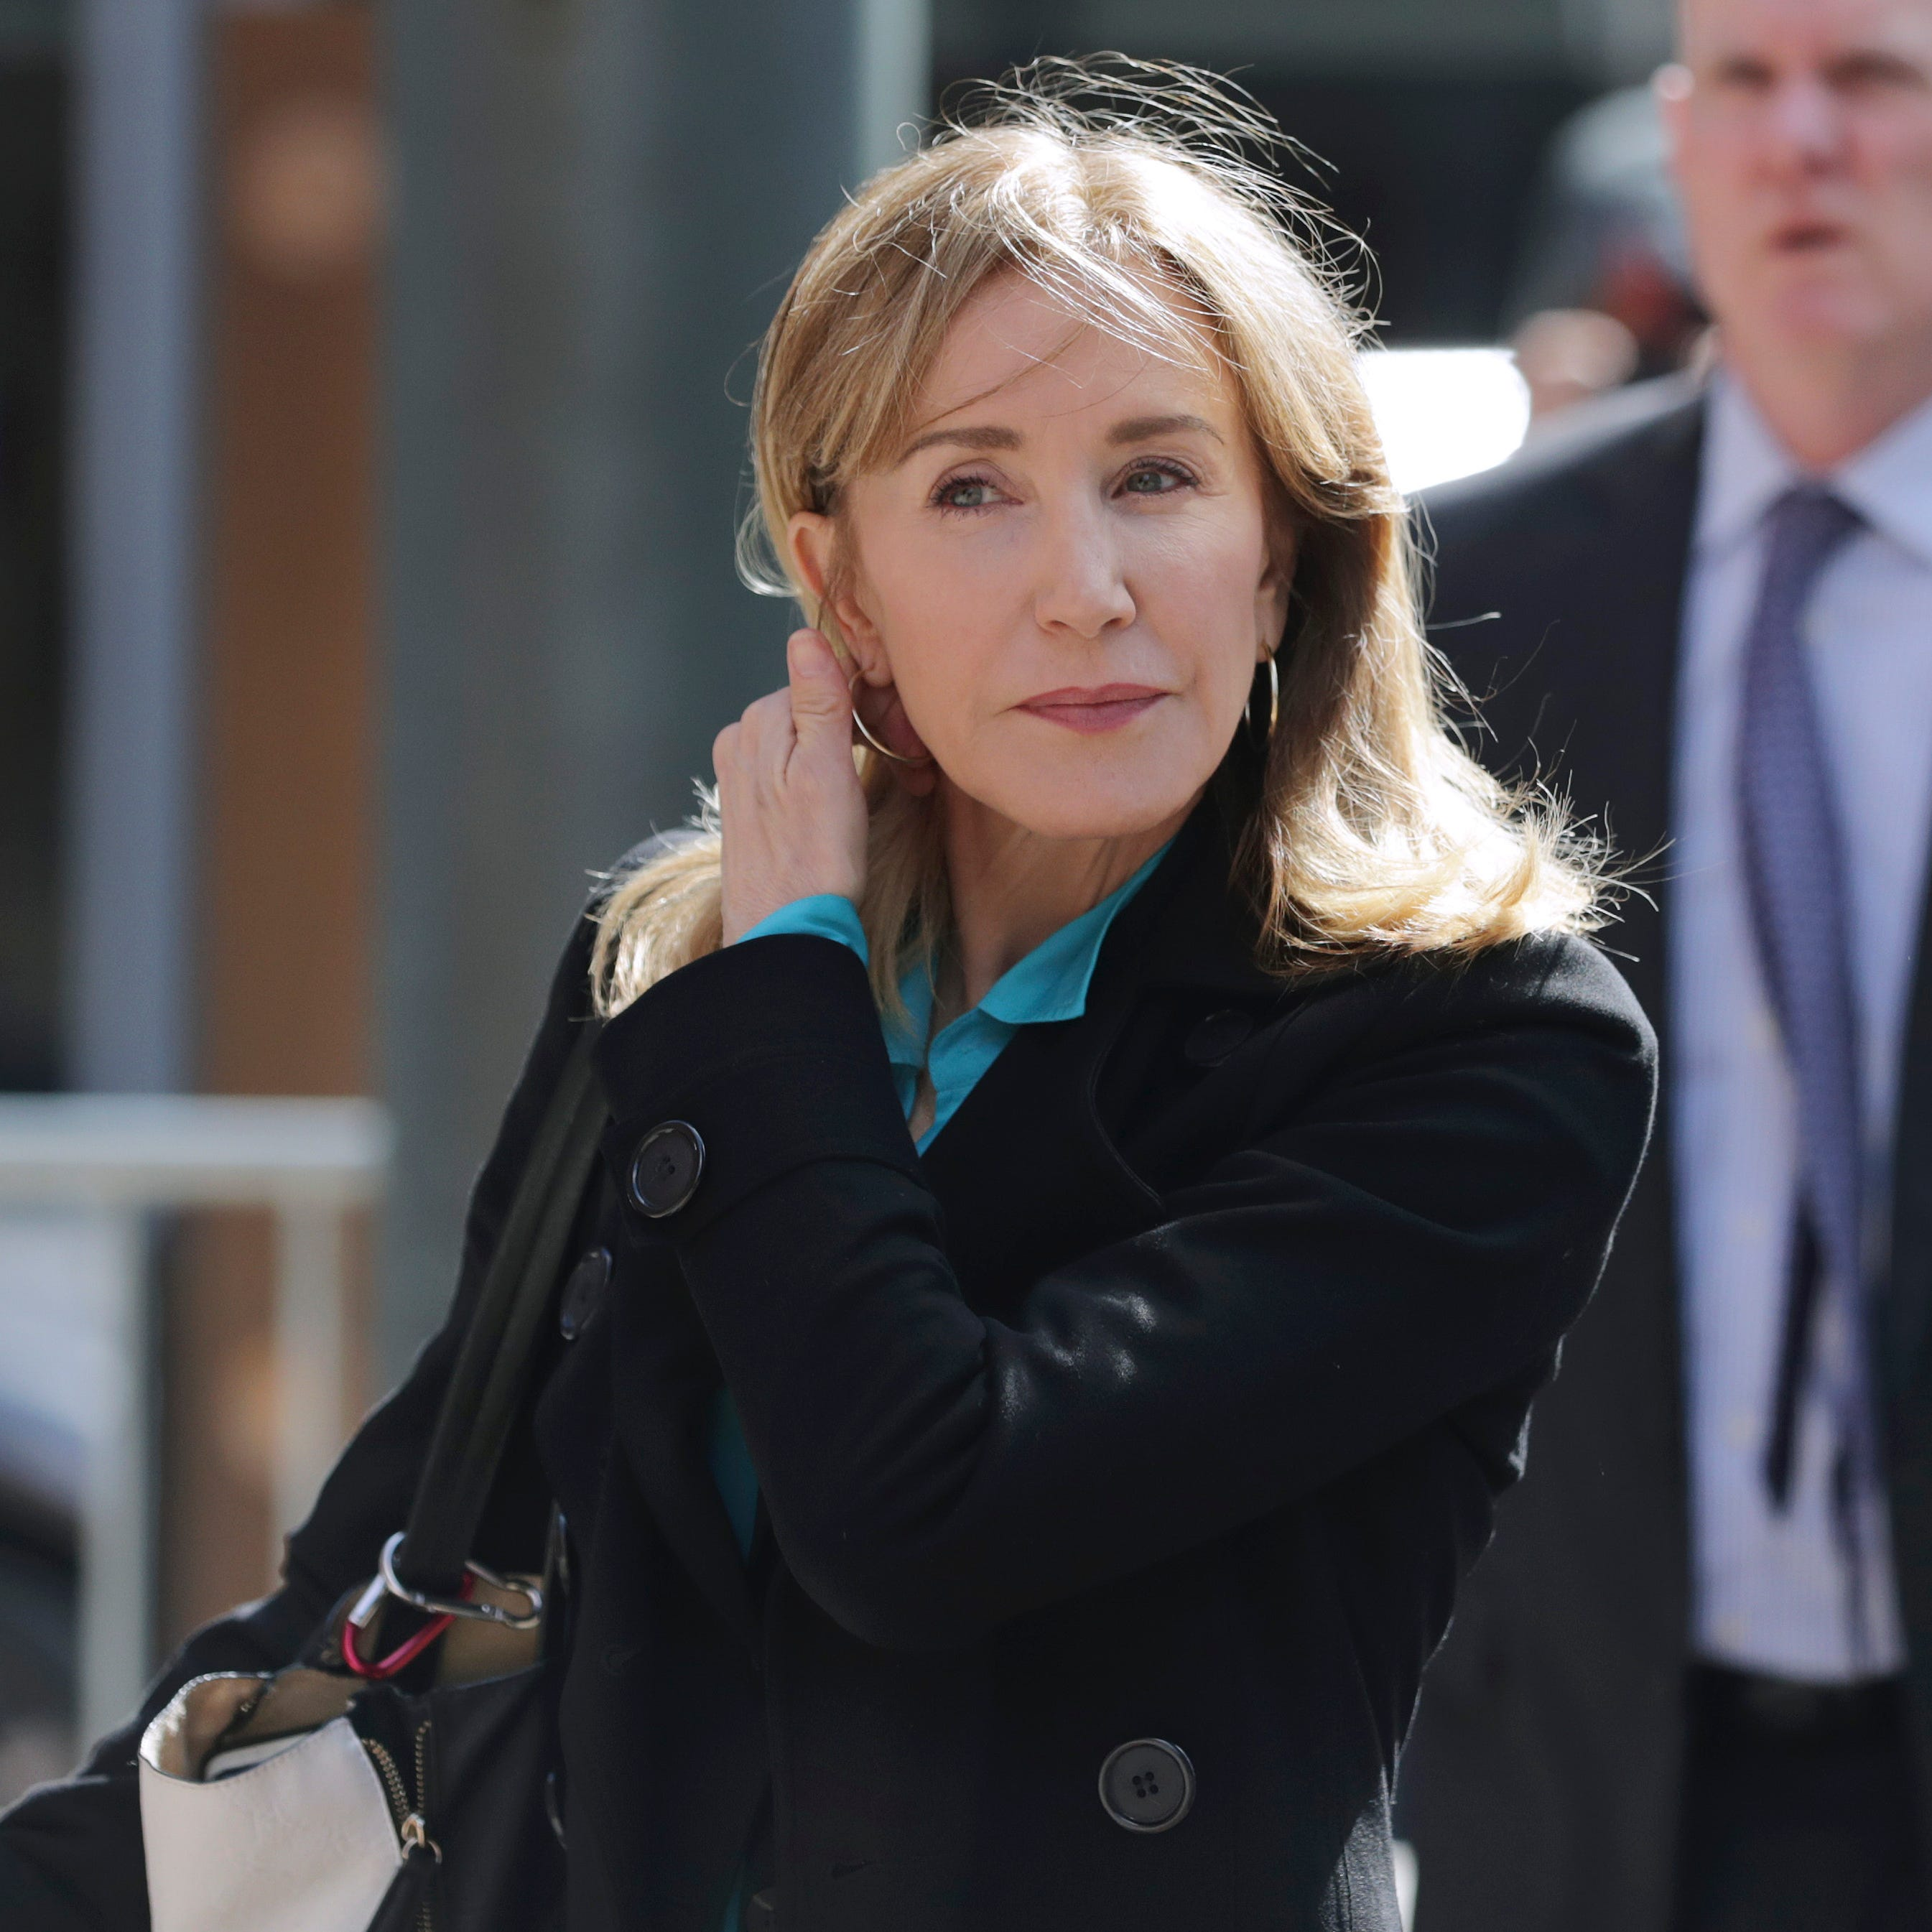 Felicity Huffman could face prison time in college admissions scam